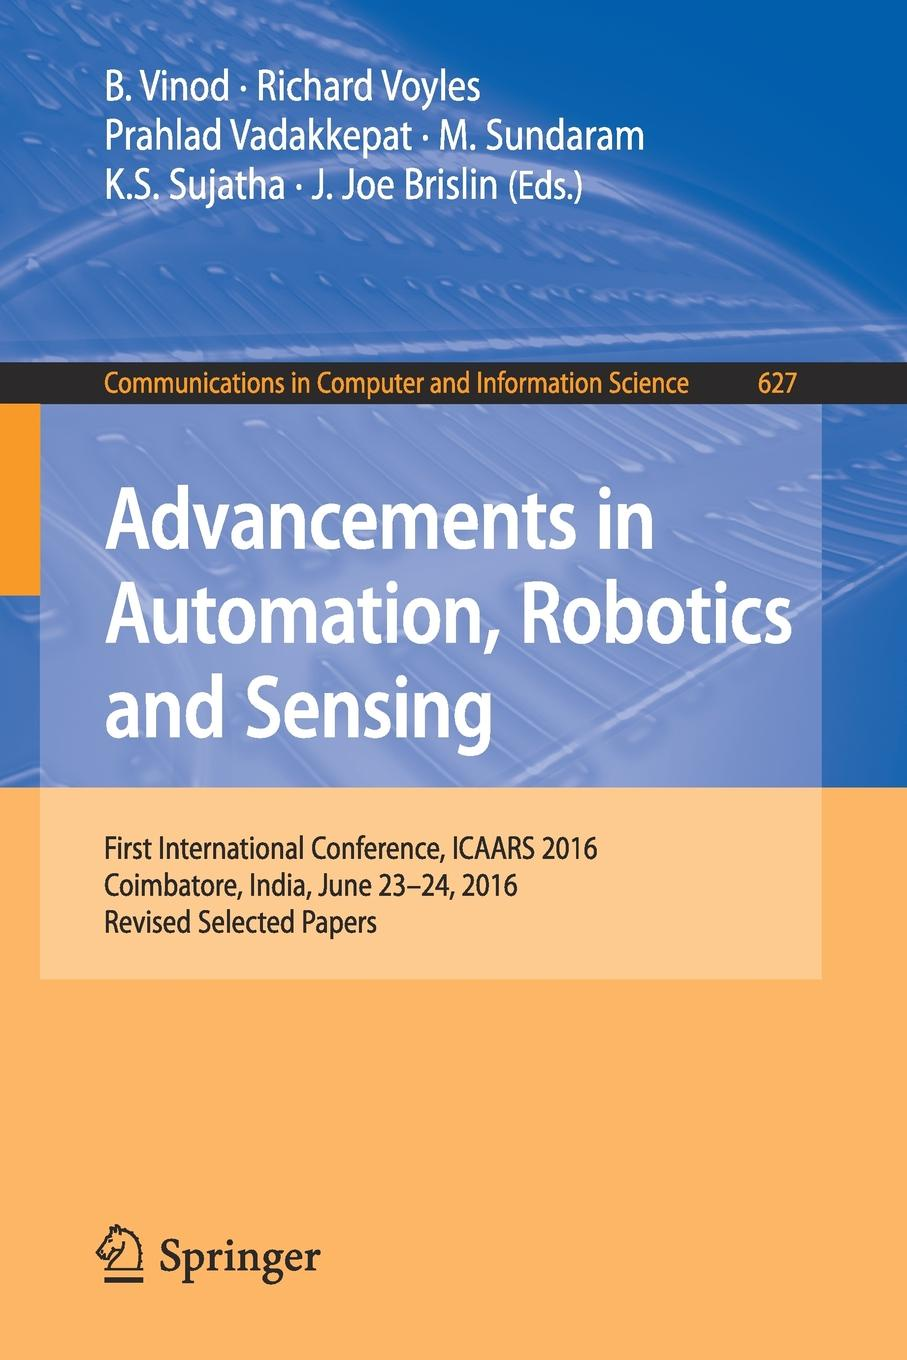 Advancements in Automation, Robotics and Sensing. First International Conference, ICAARS 2016, Coimbatore, India, June 23 - 24, 2016, Revised Selected Papers